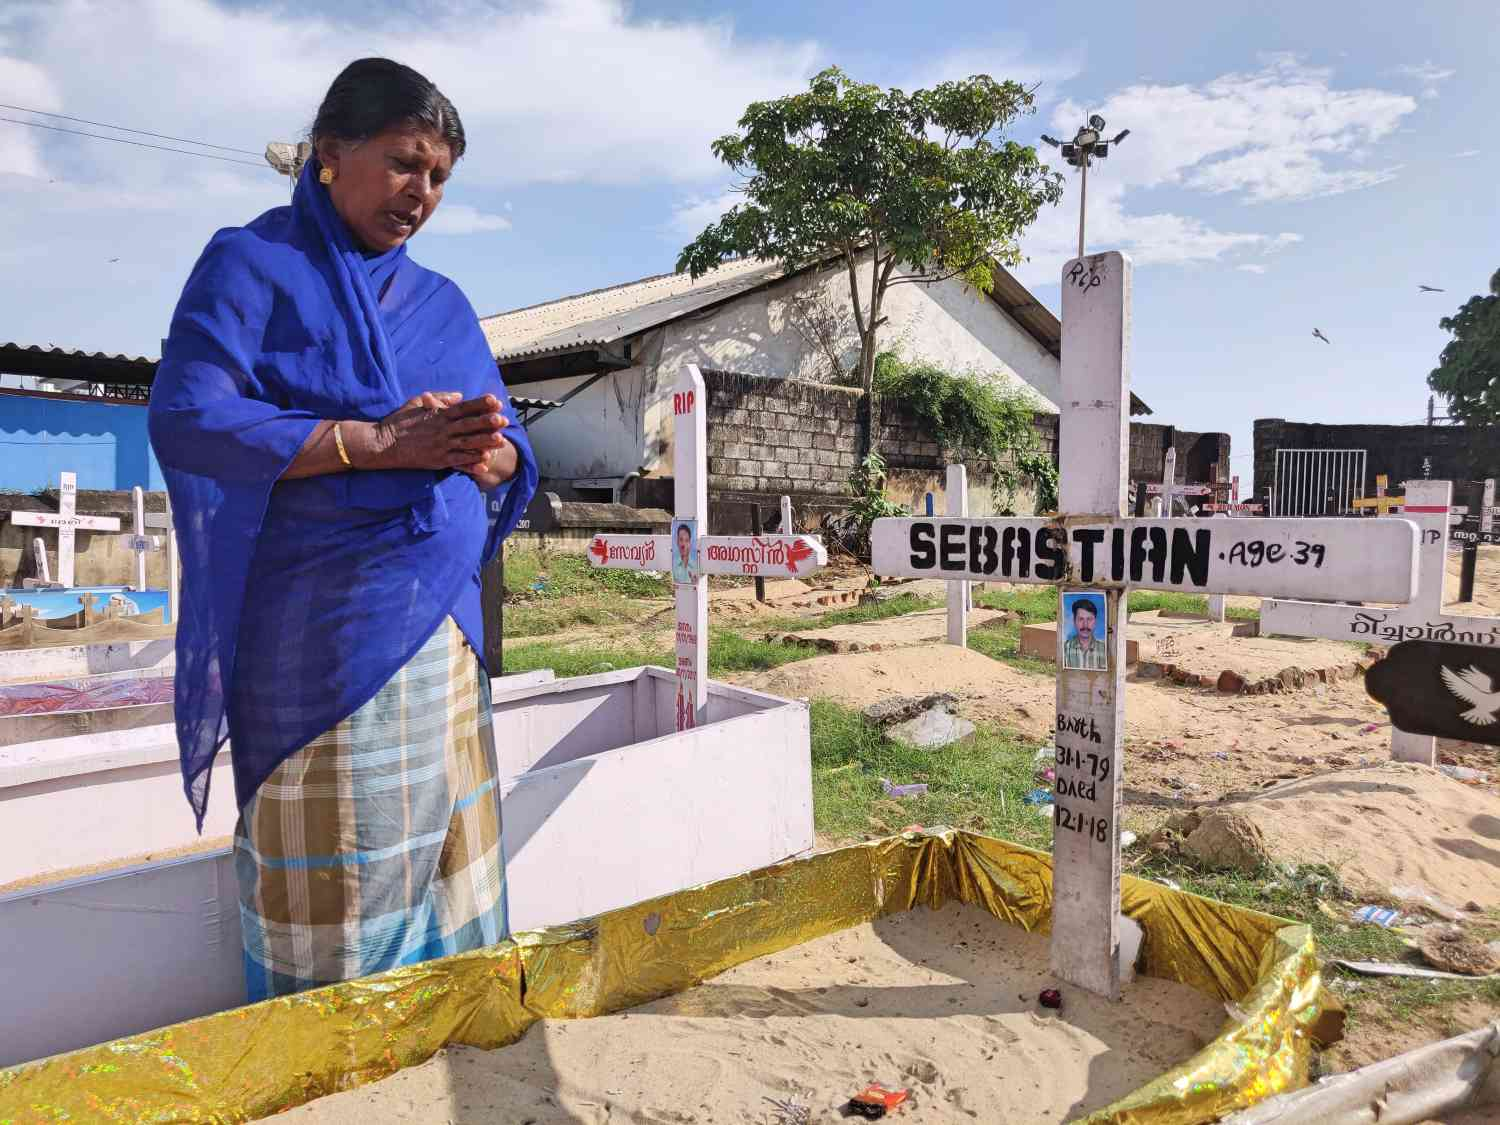 Vizhinjam resident Blasita Pathrose prays at the grave of her son Sebastian, a fisherman who lost his life due to Cyclone Ockhi in November 2017.